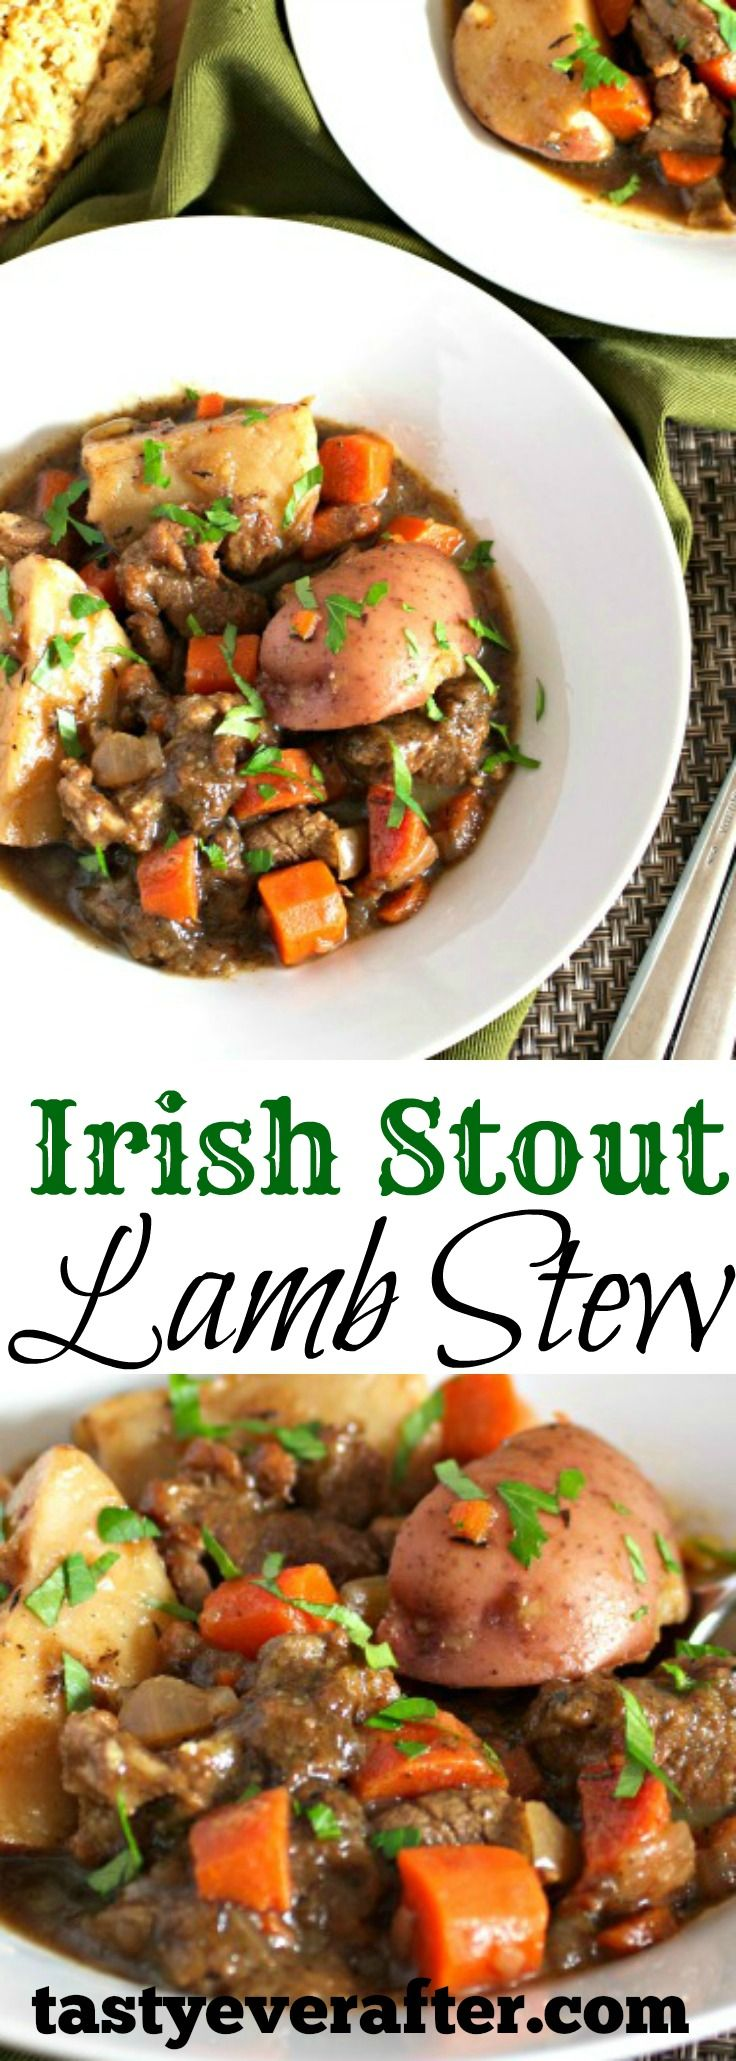 This slow simmered stew is a family favorite every St Patrick's Day.  Made with grass-fed local farm lamb & veggies!